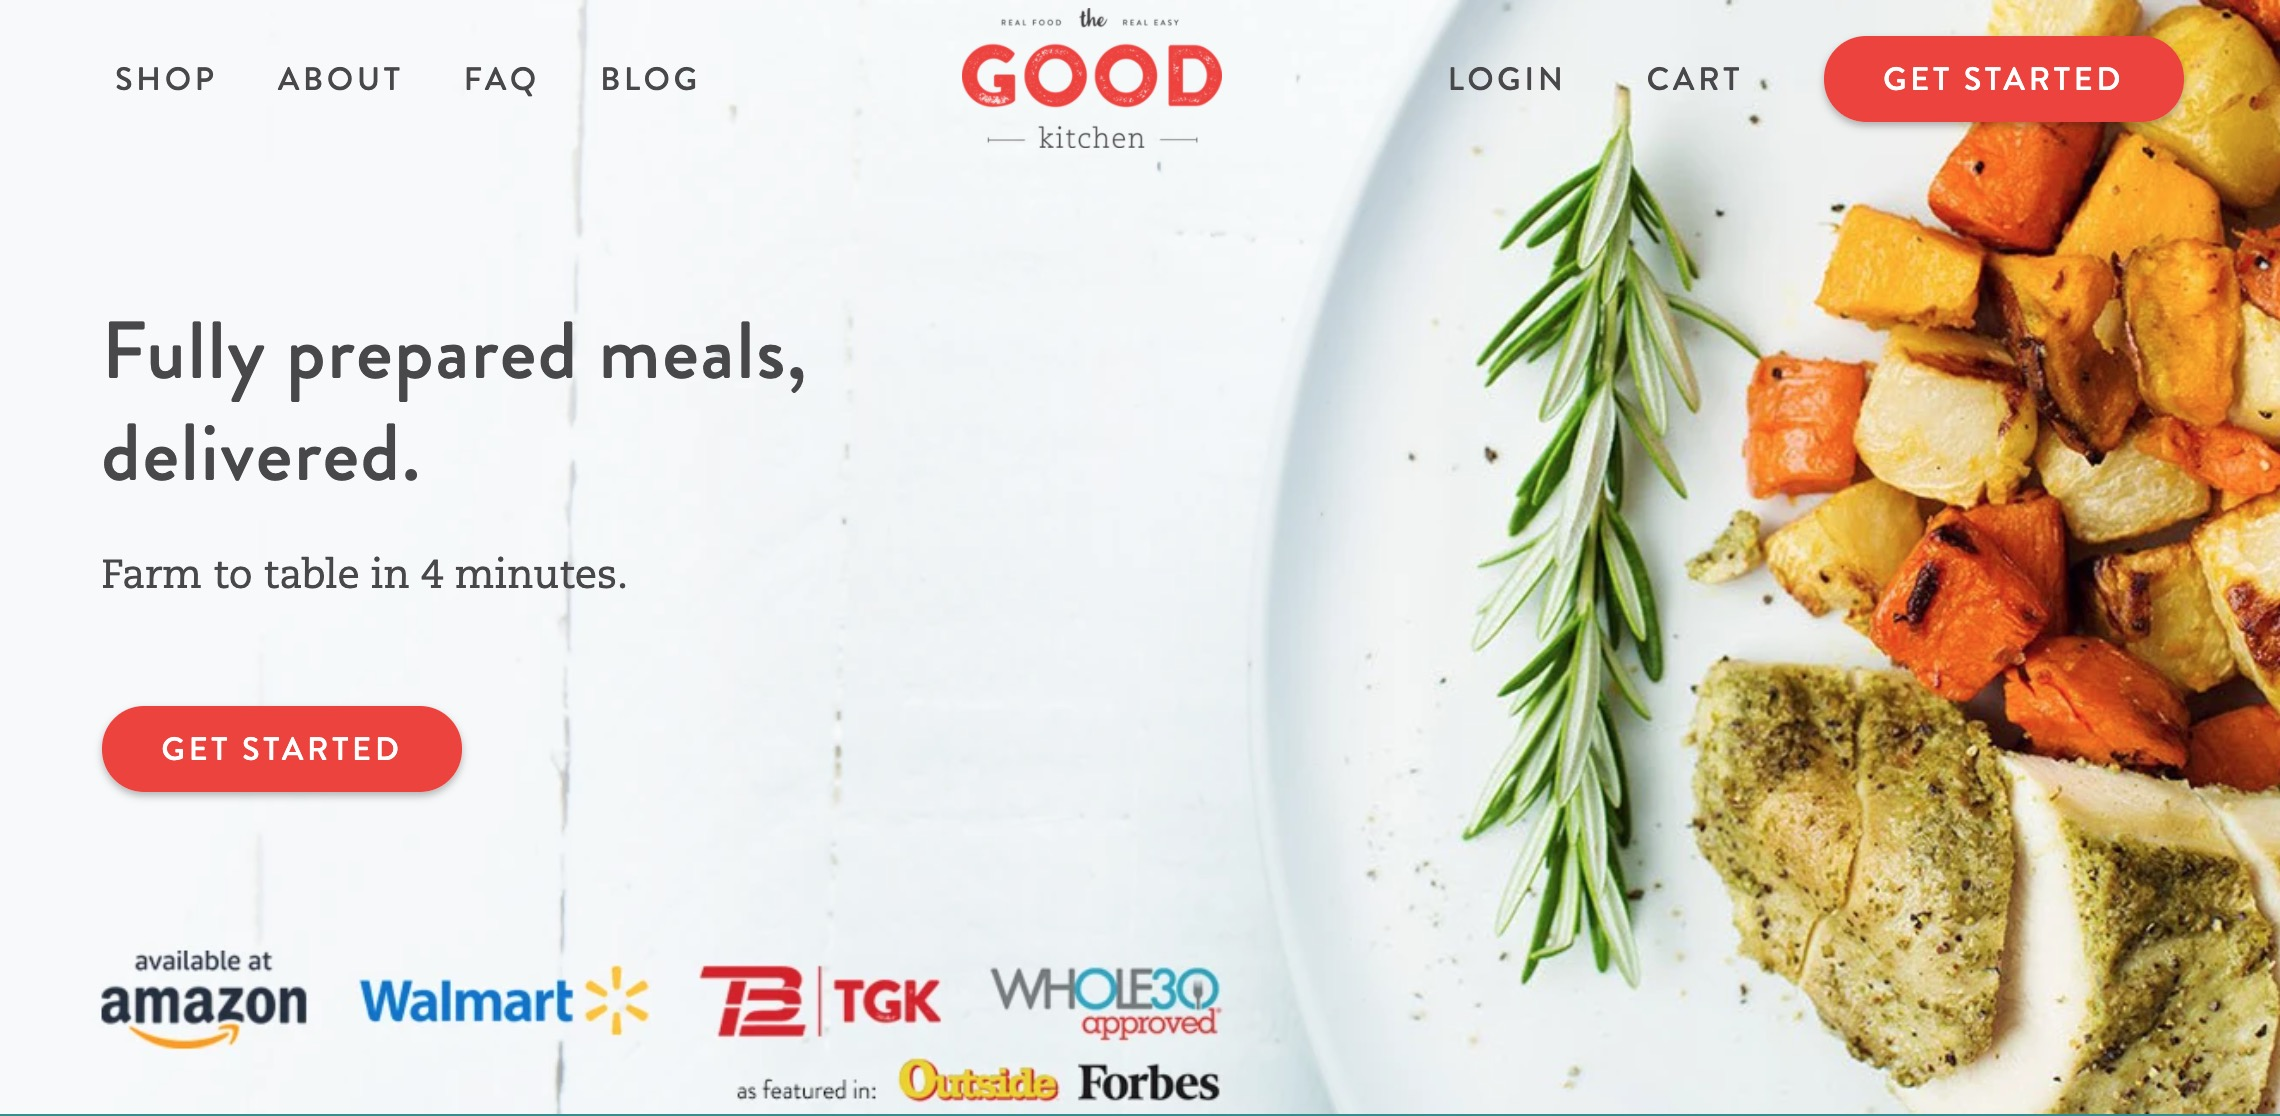 The Good Kitchen main page